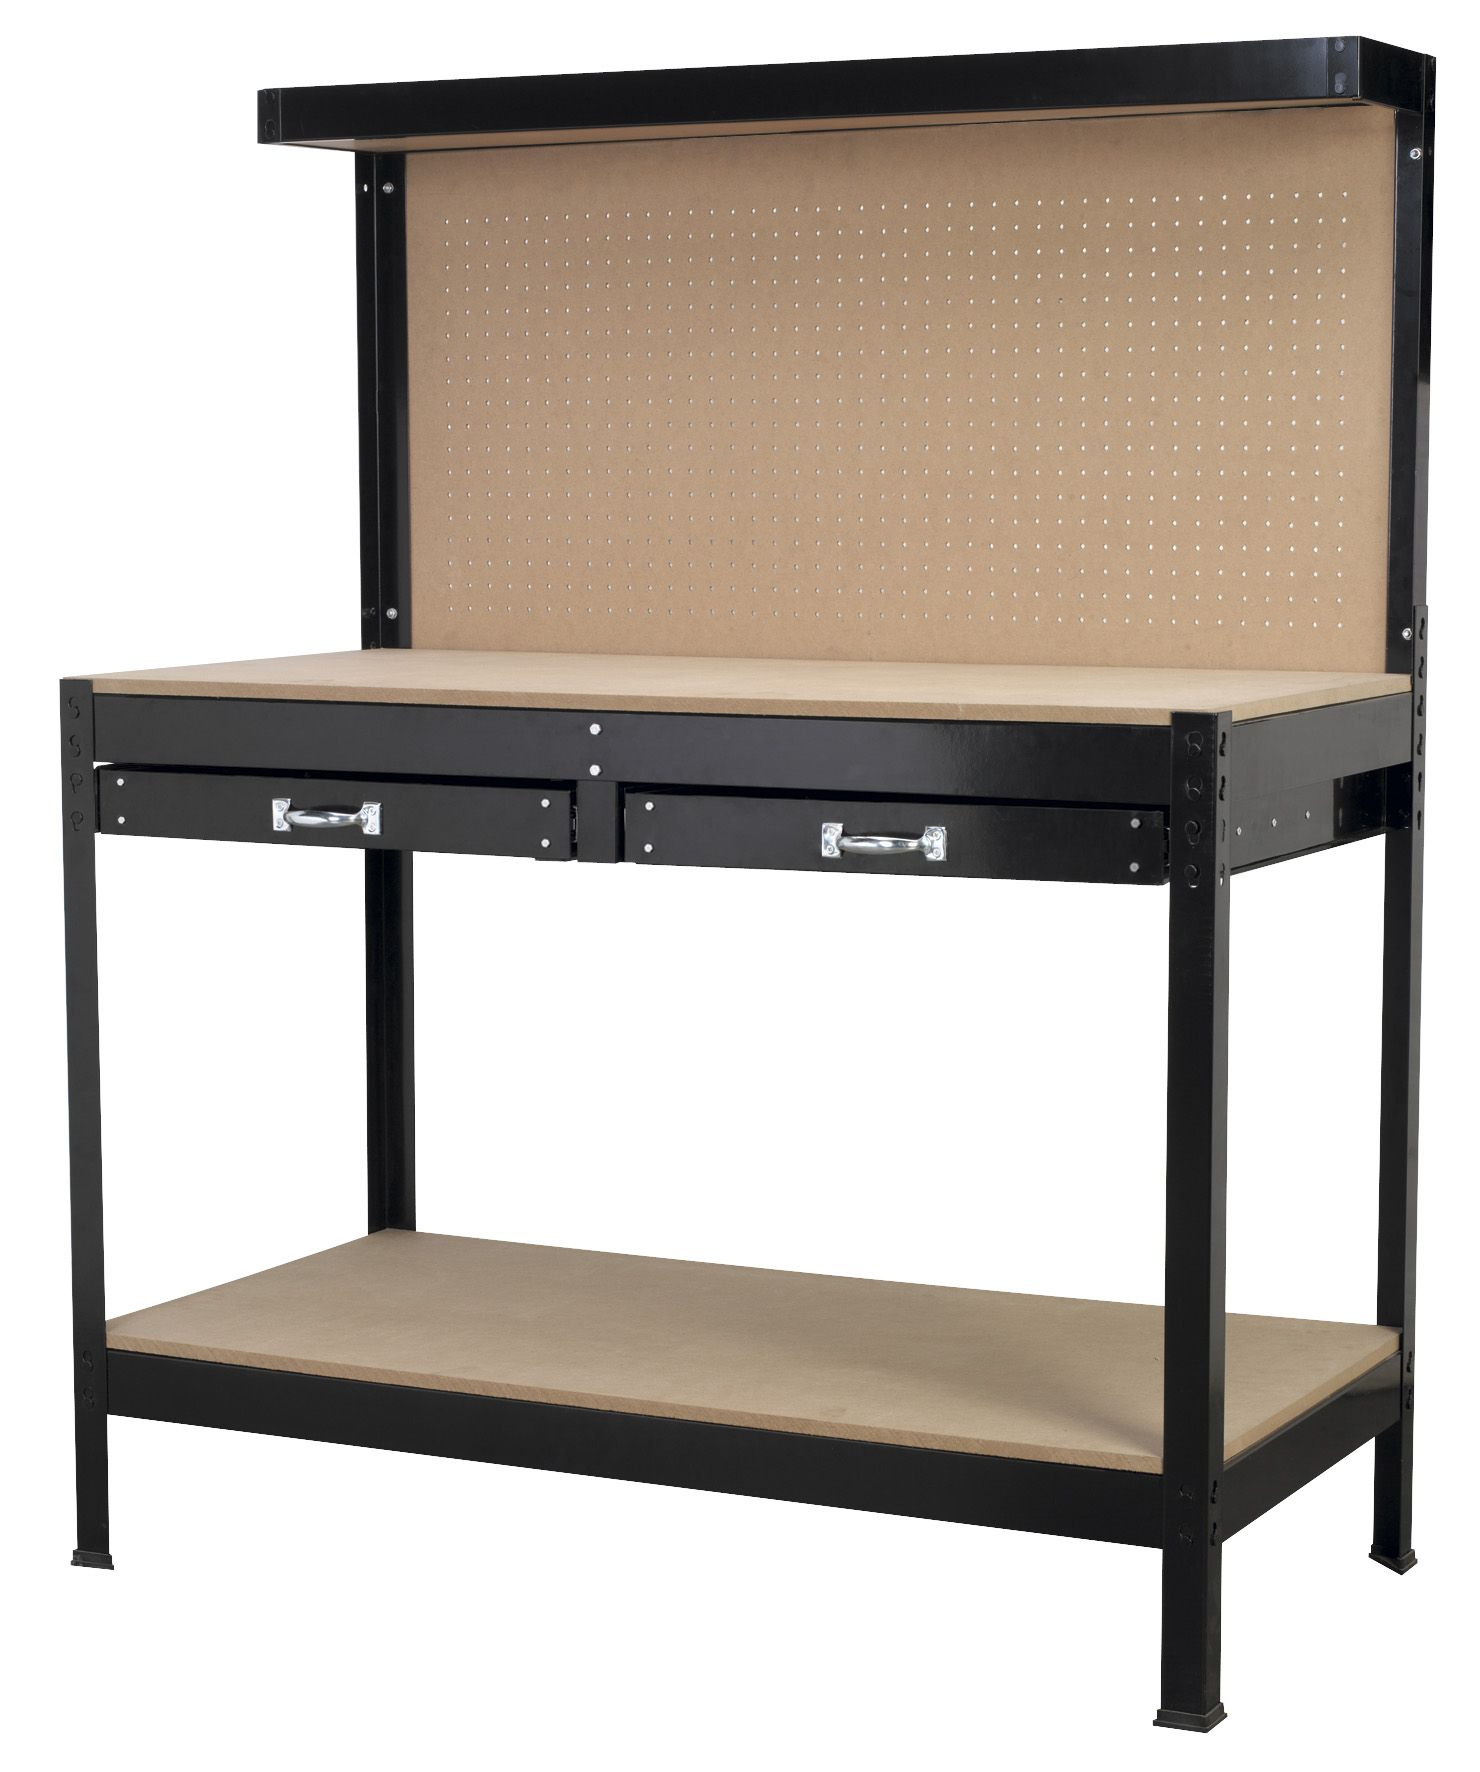 Sealey Workstation 1.2m with Drawers